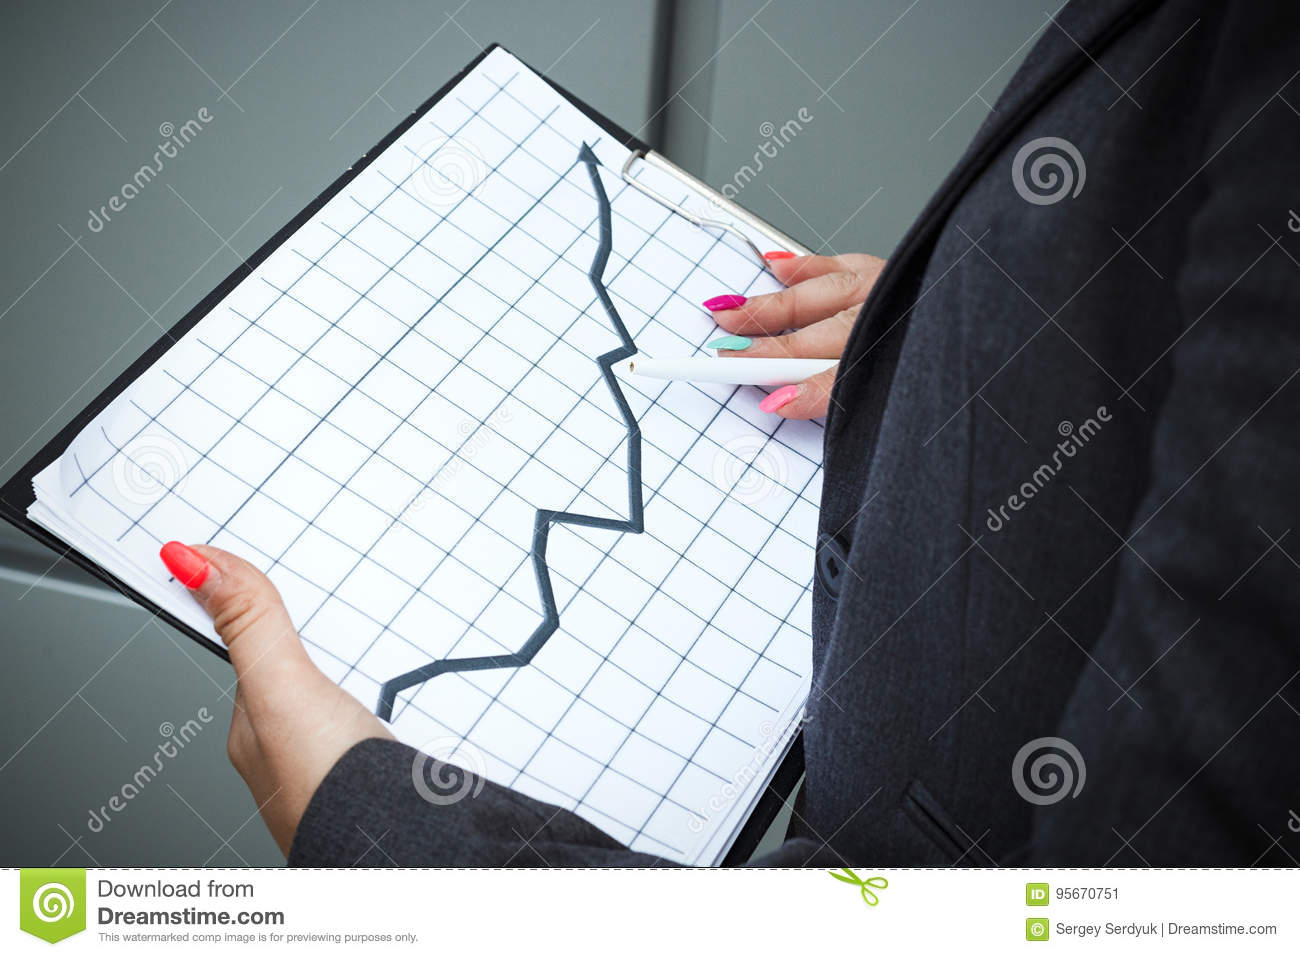 Business concept of success and growth. A successful woman boss, in a suit and wearing glasses, holds a tablet with charts